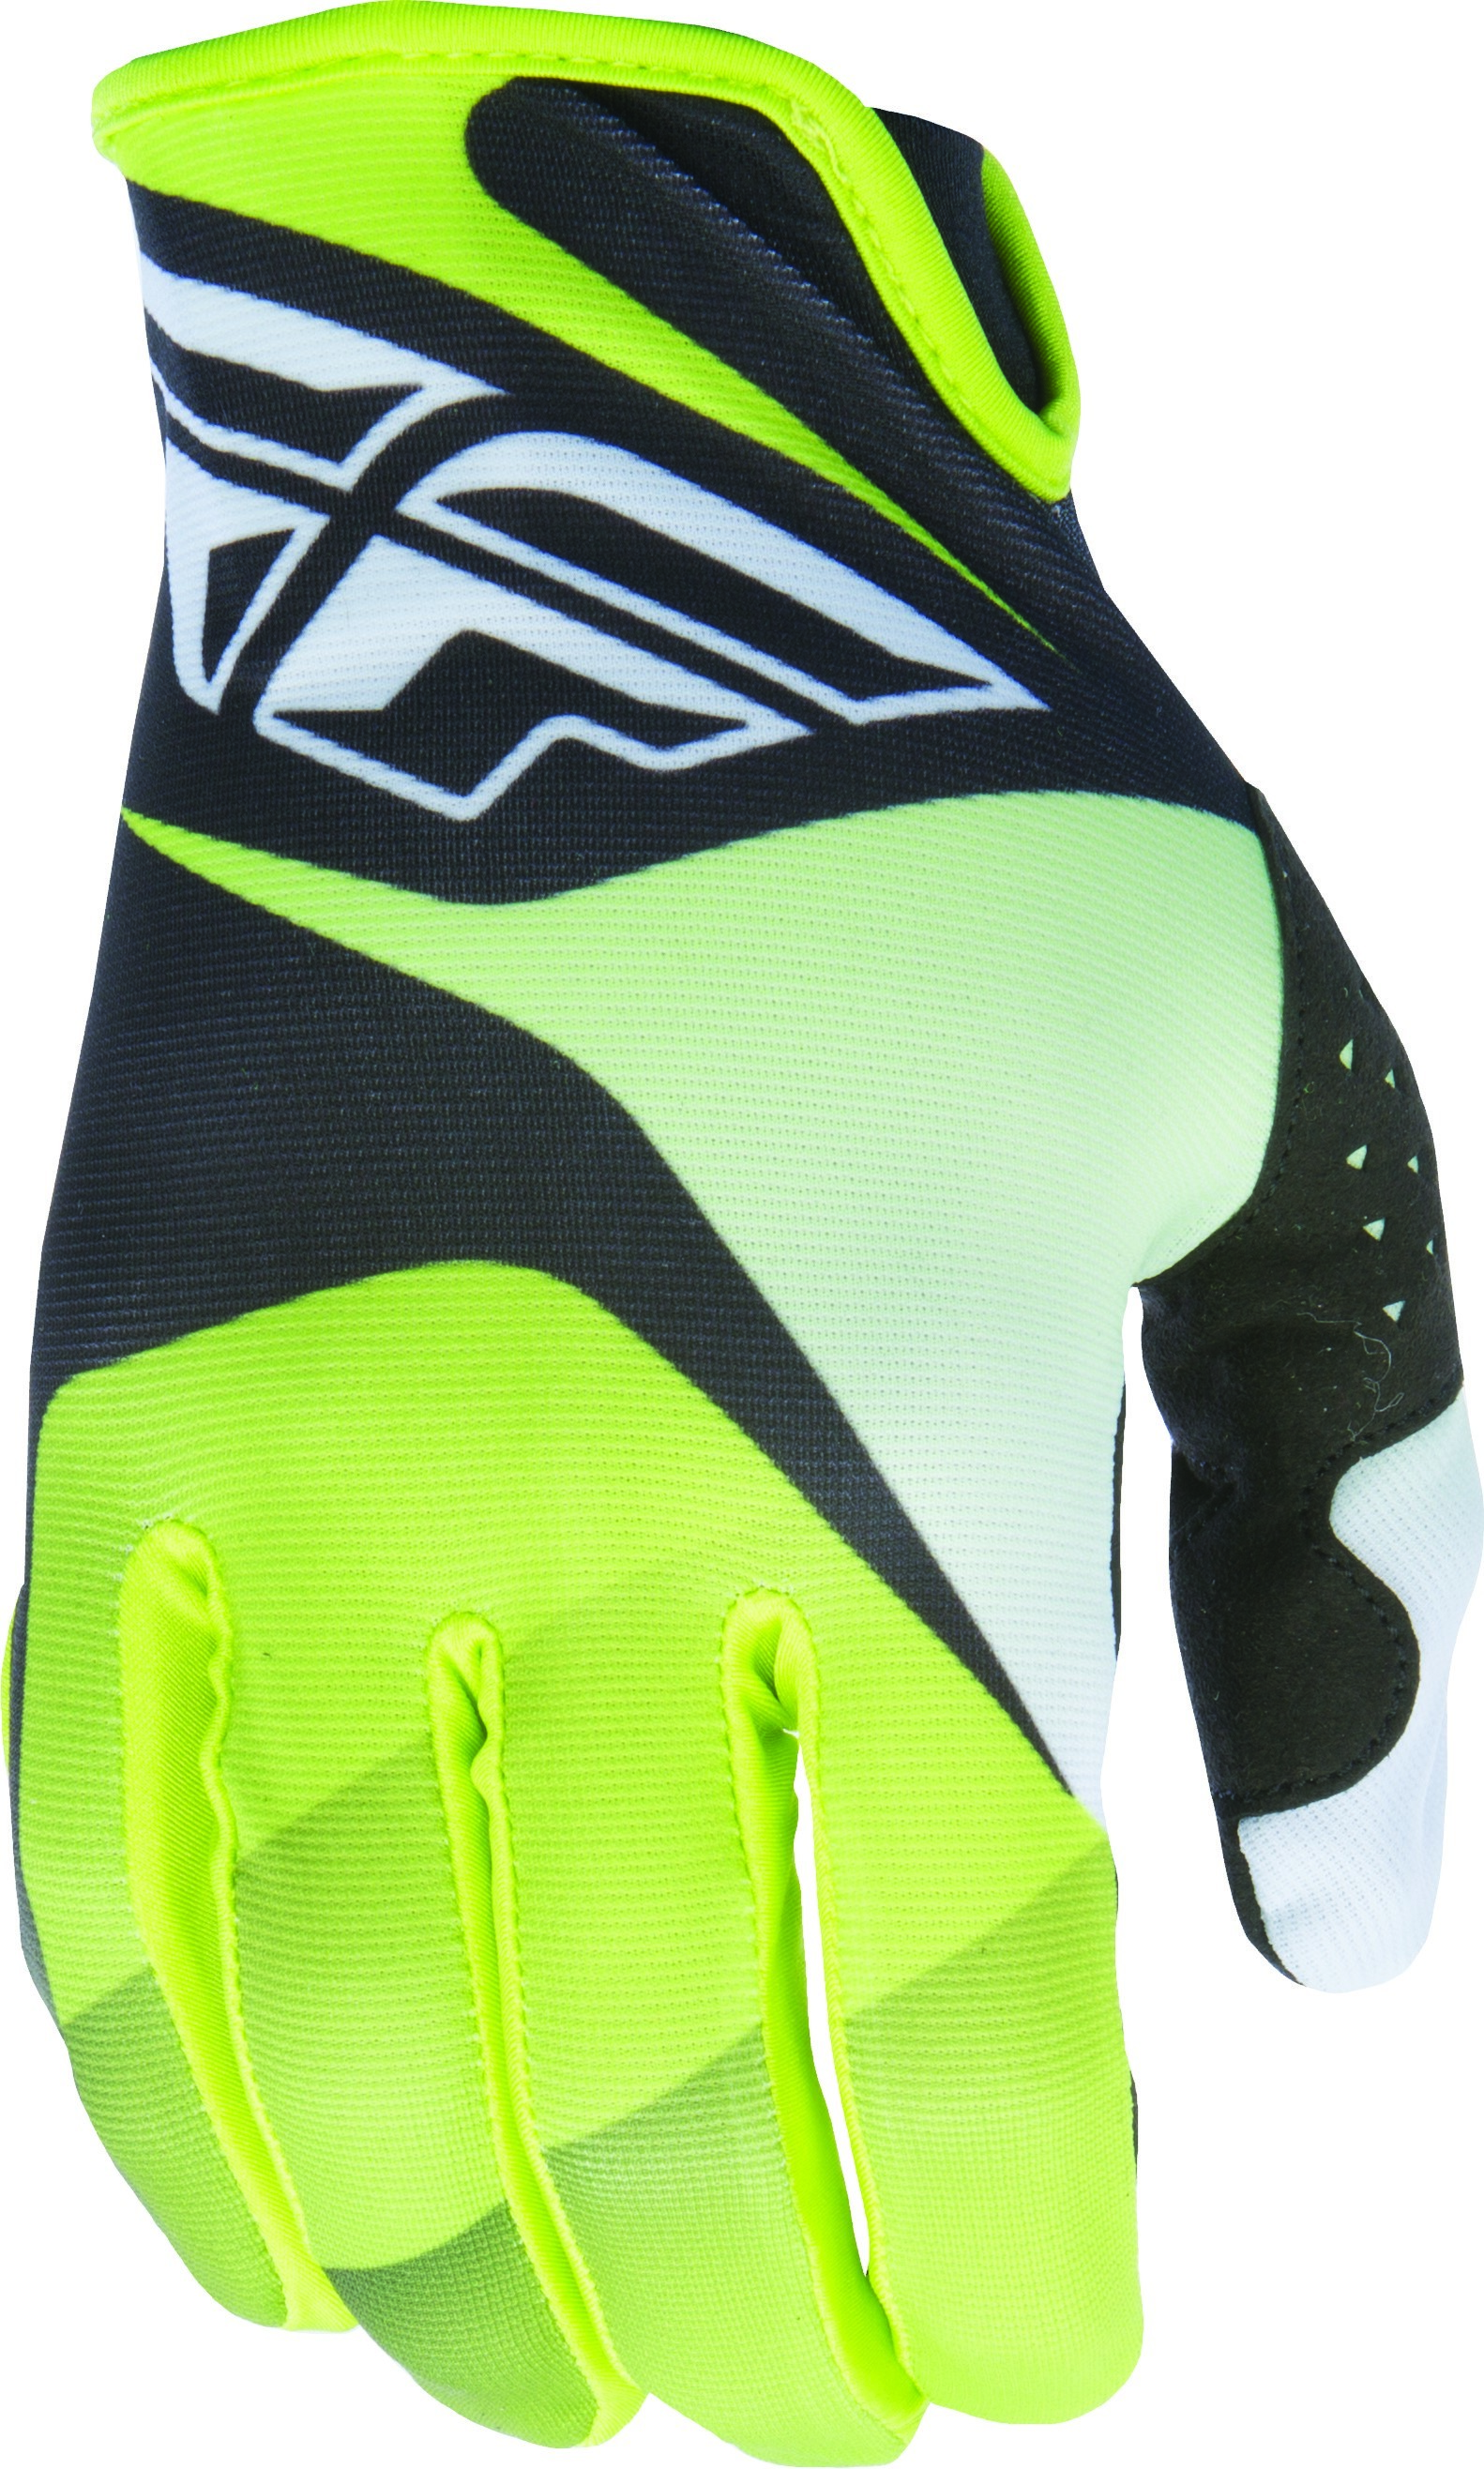 LITE GLOVE LIME/BLACK/WHITE SZ 8 S (370-01508)